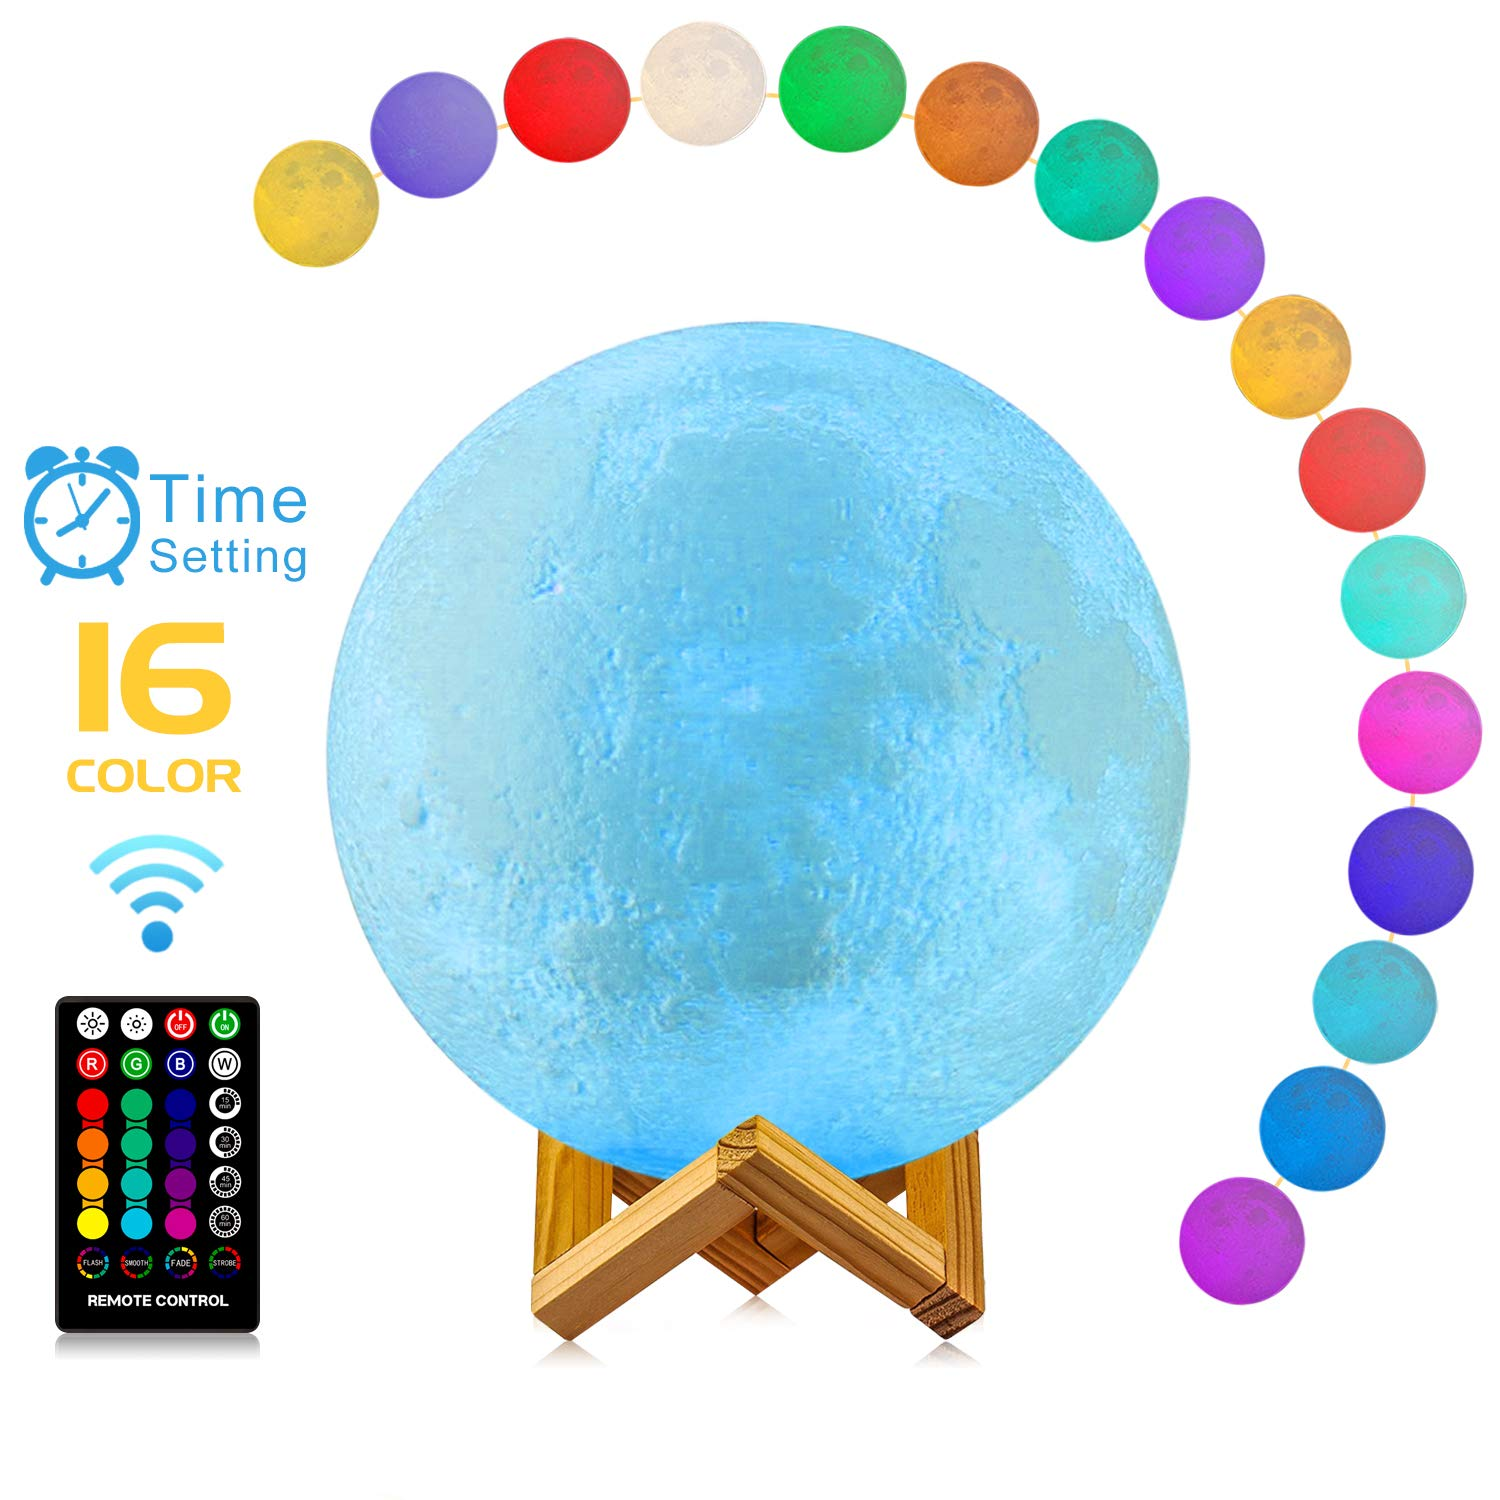 Moon Lamp, Moon Light Lamps with Time Setting and Stand 3D Print LED 16 Colors, Hung Up Decorative Night Lights for Birthday Baby Kids Party Christmas Gifts(Diameter 9.6 inch)